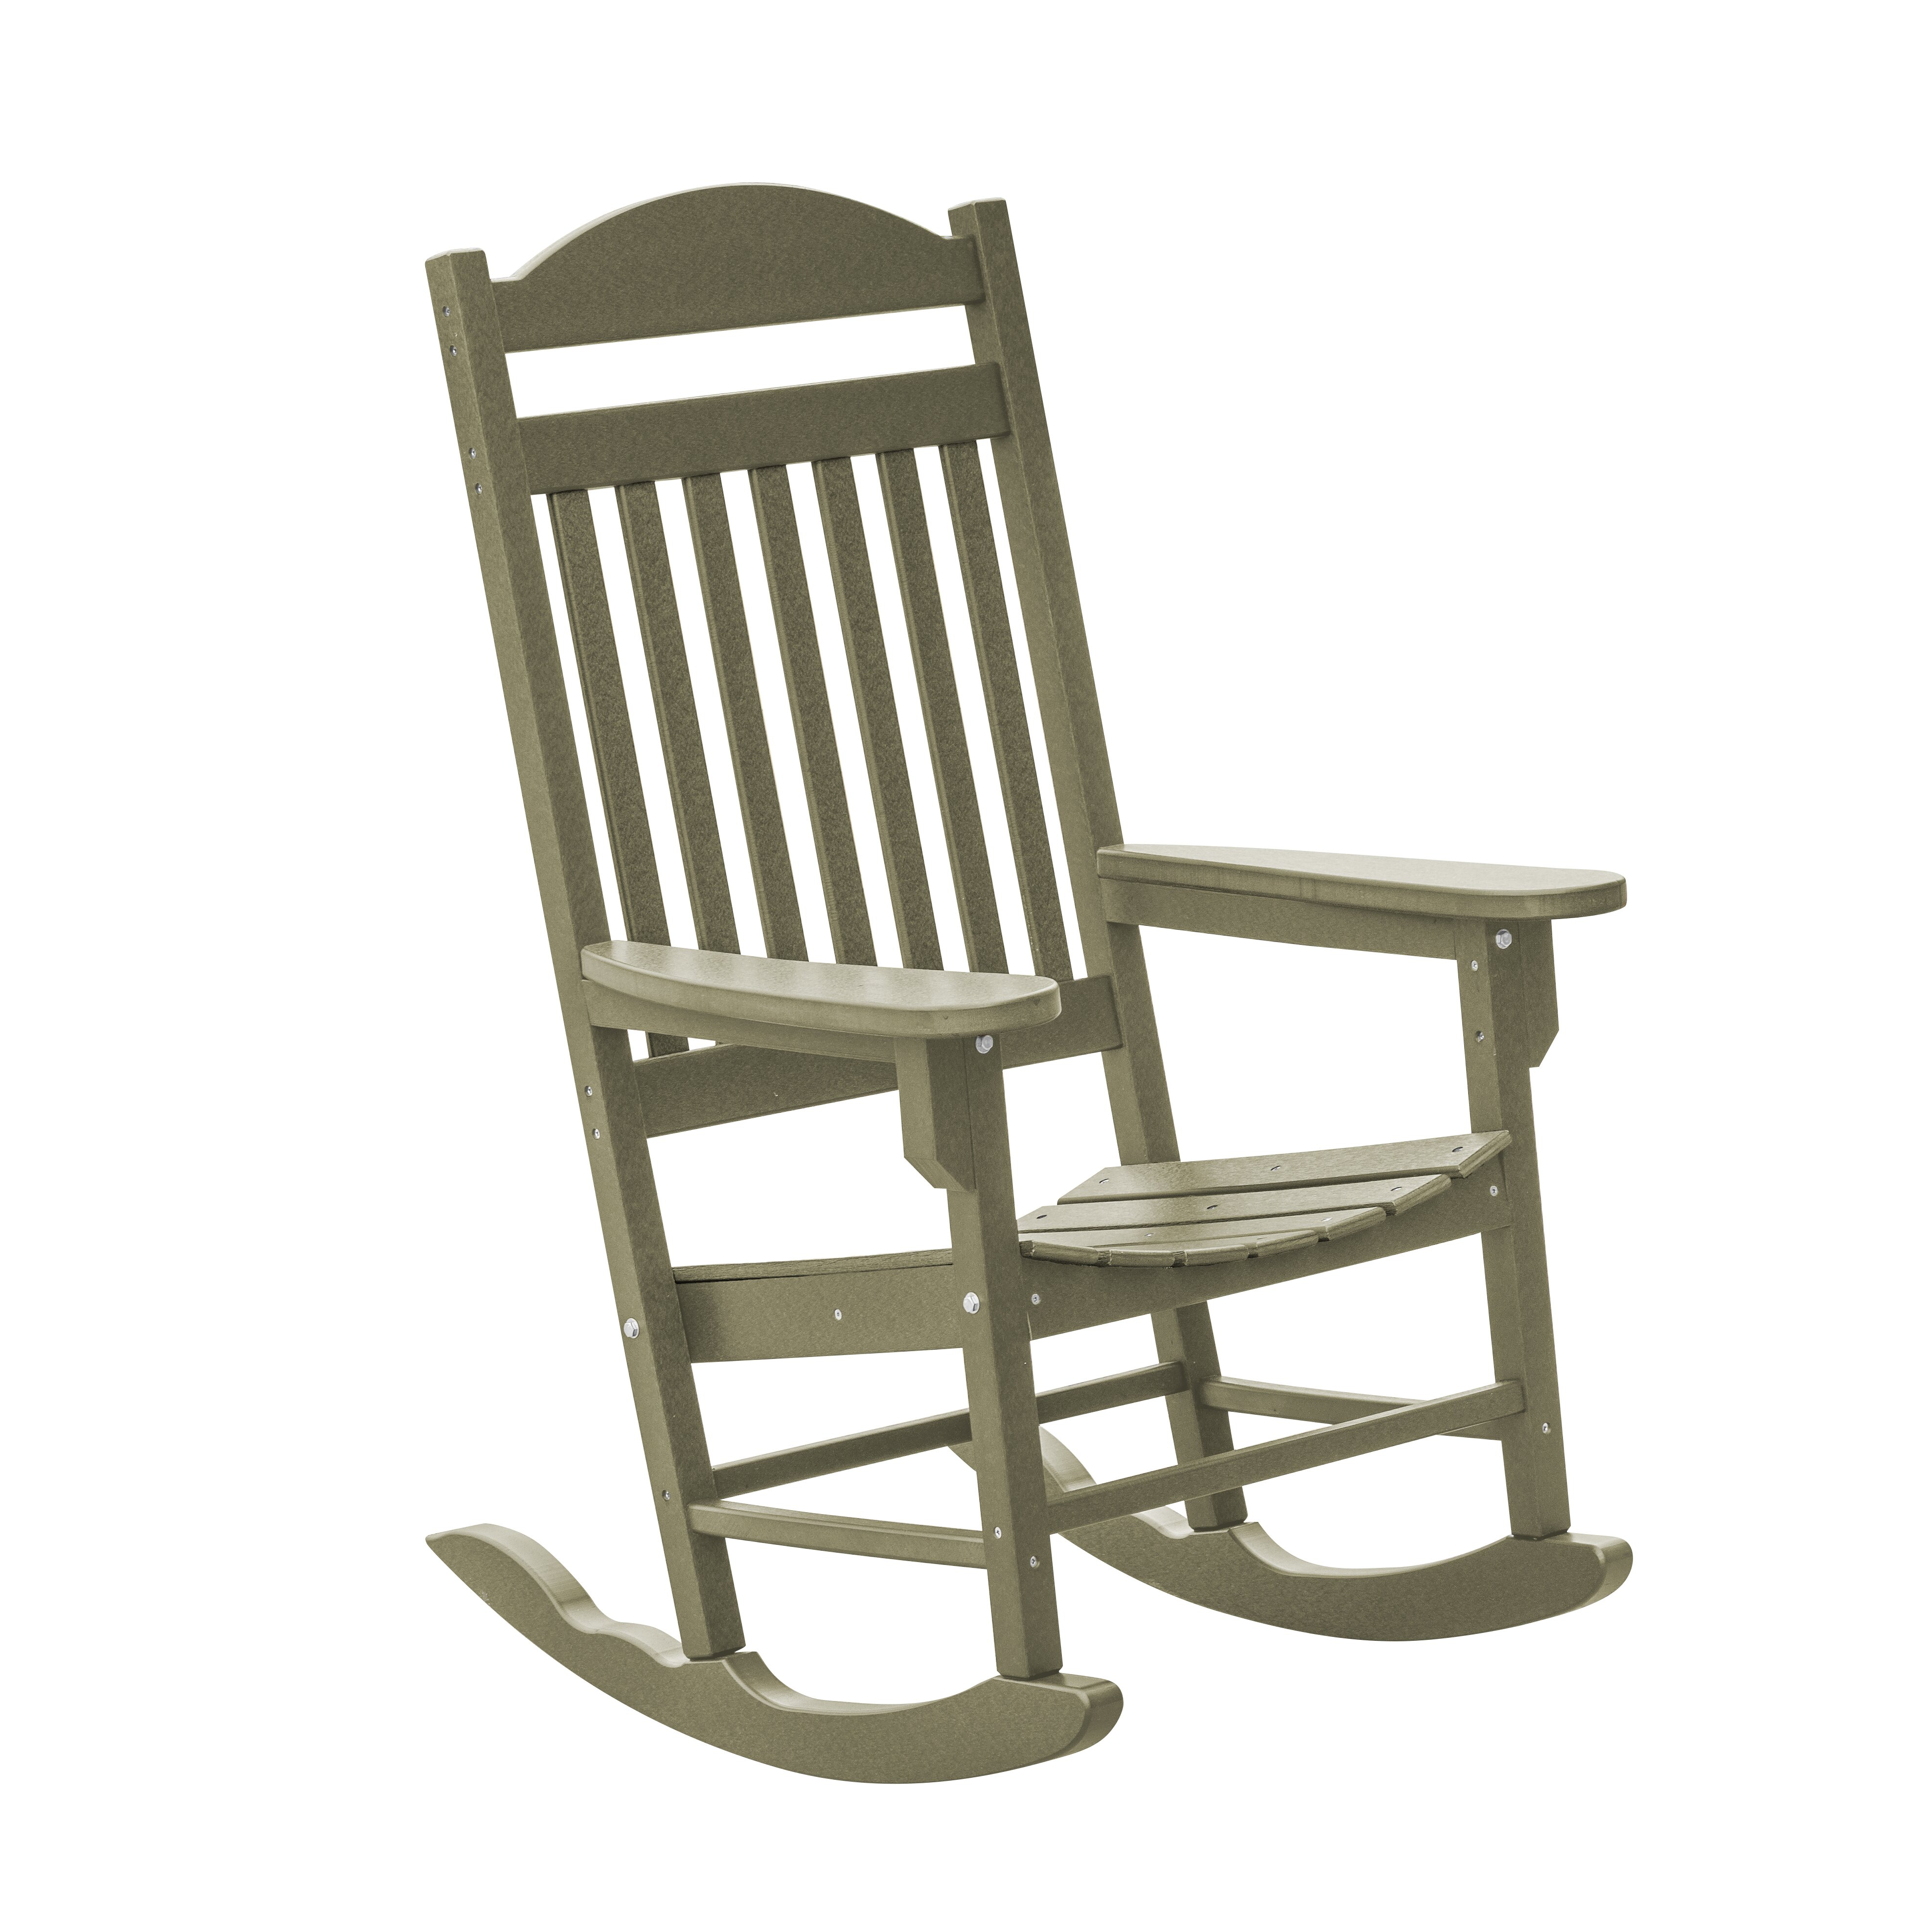 American Rocking Chair Inspirations ~ Home & Interior Design